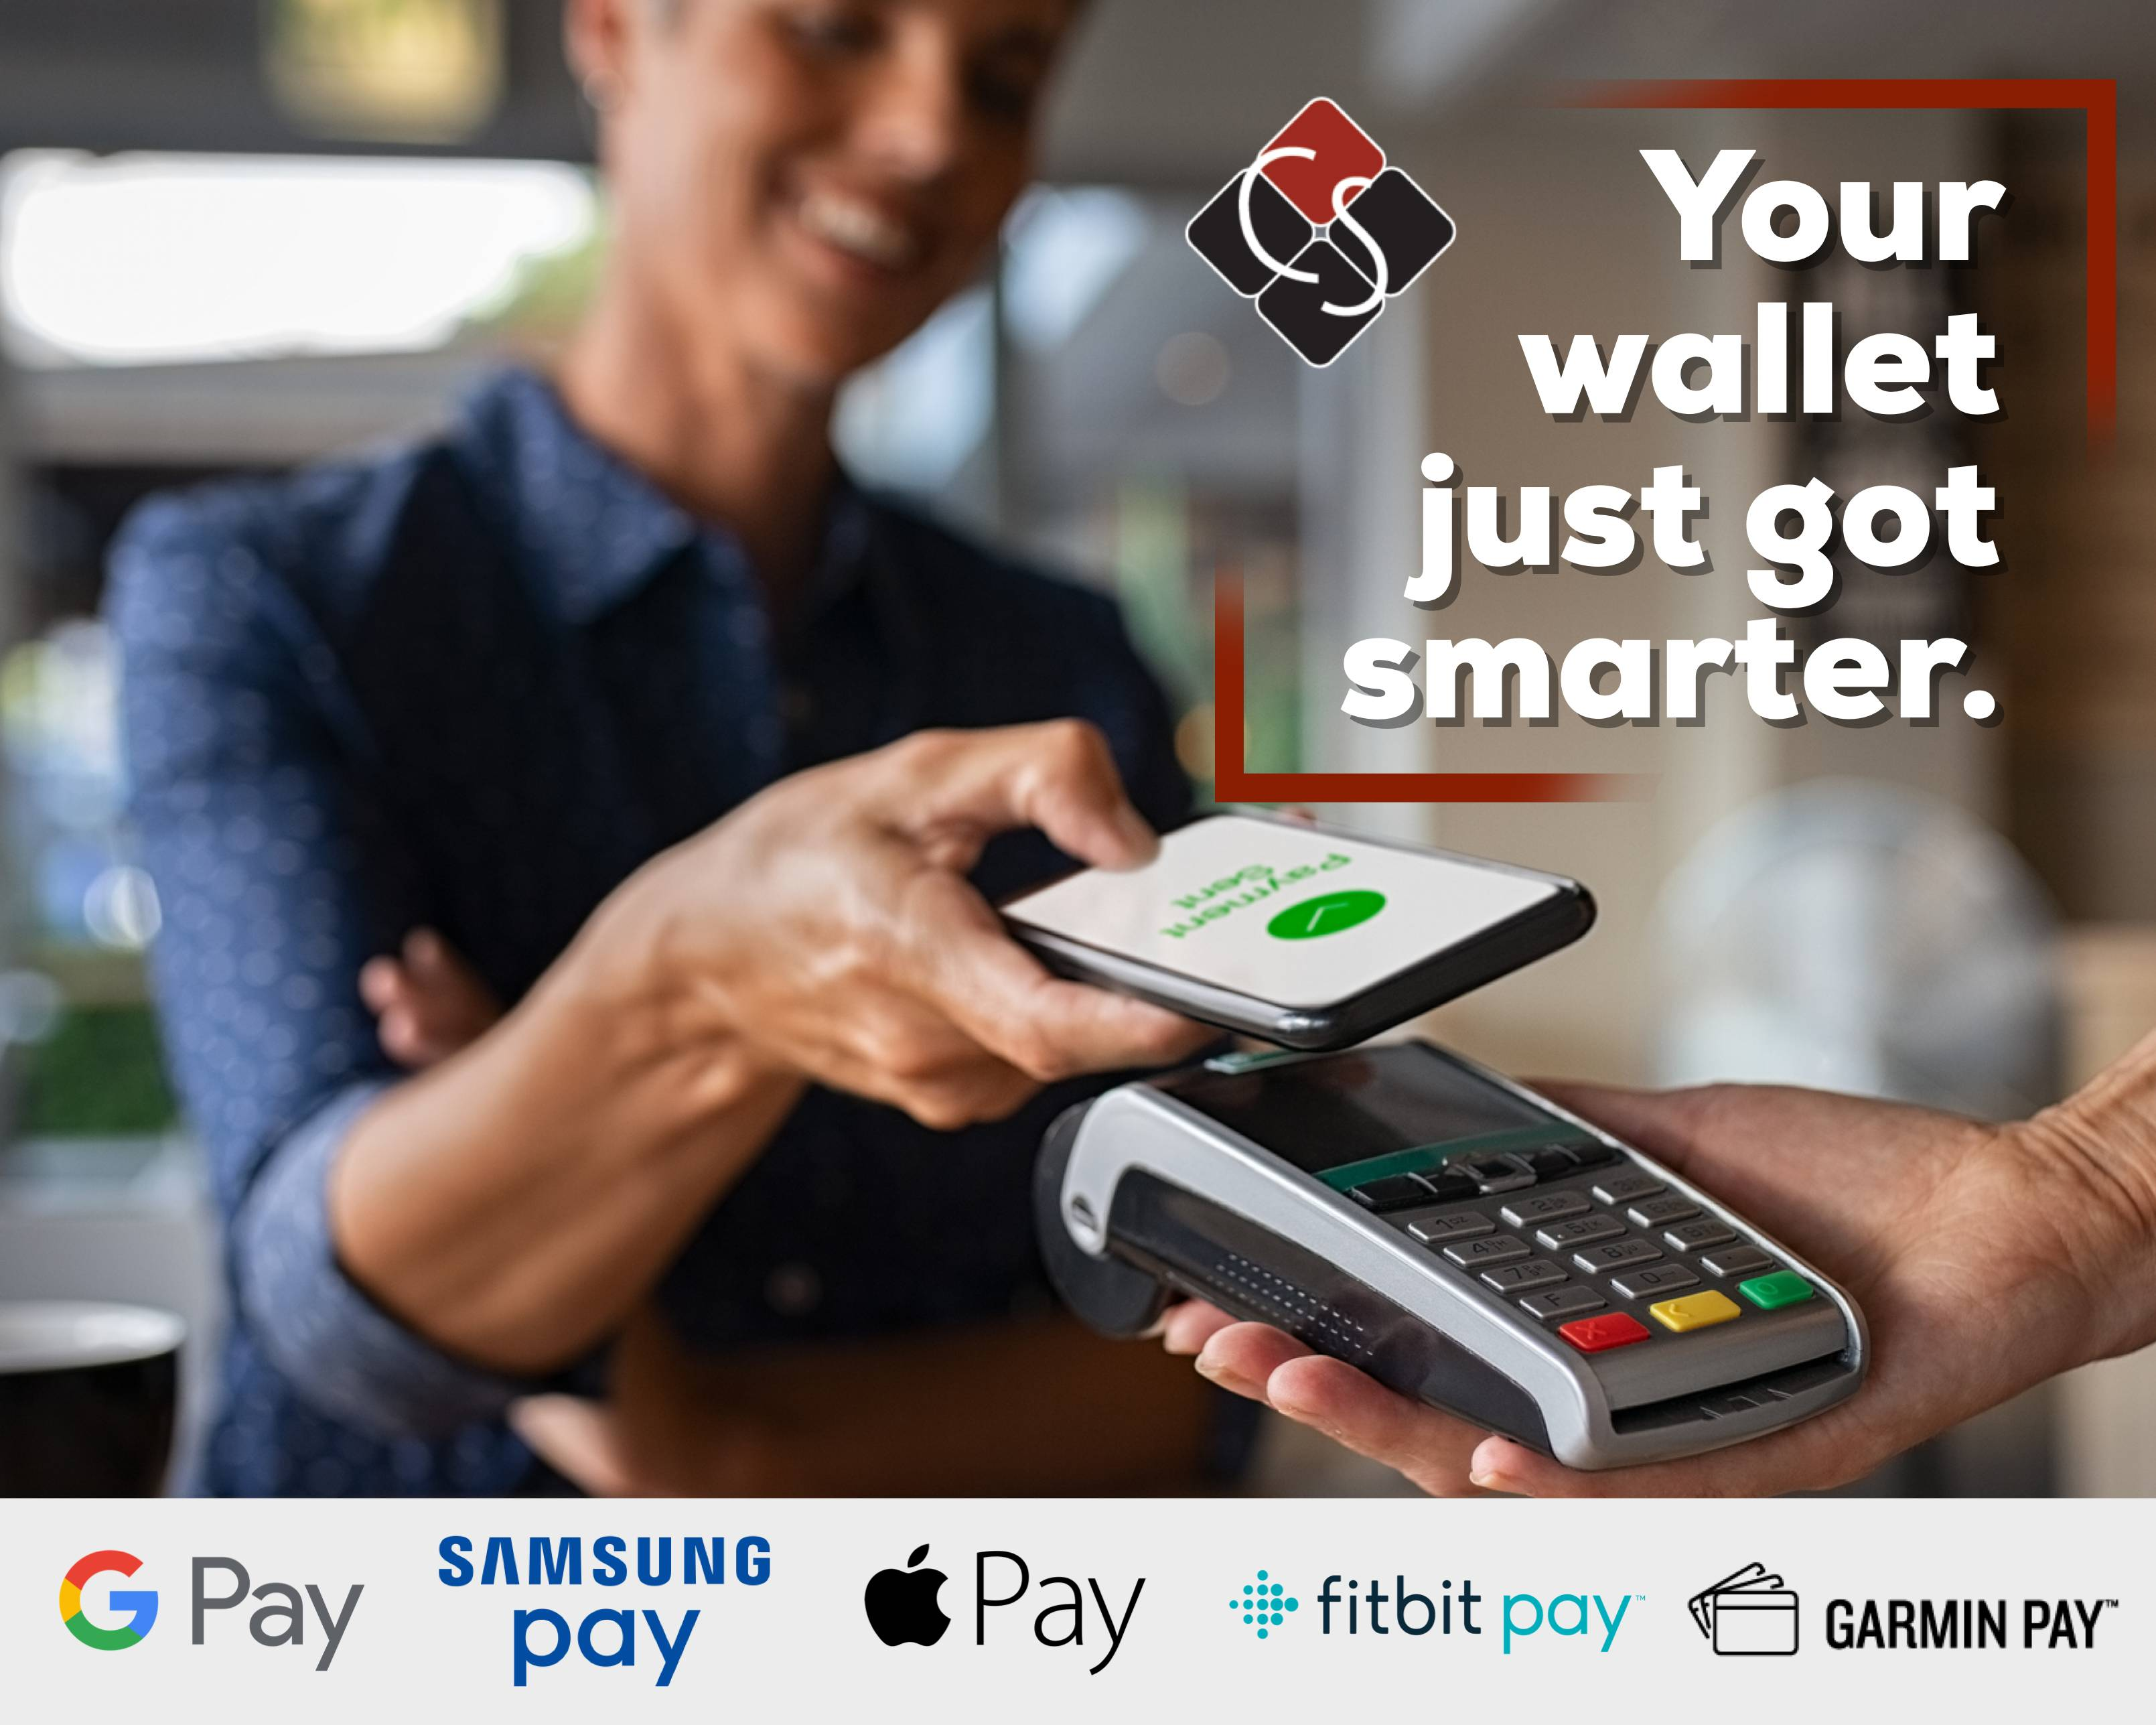 Your wallet just got smarter - woman paying for something with phone